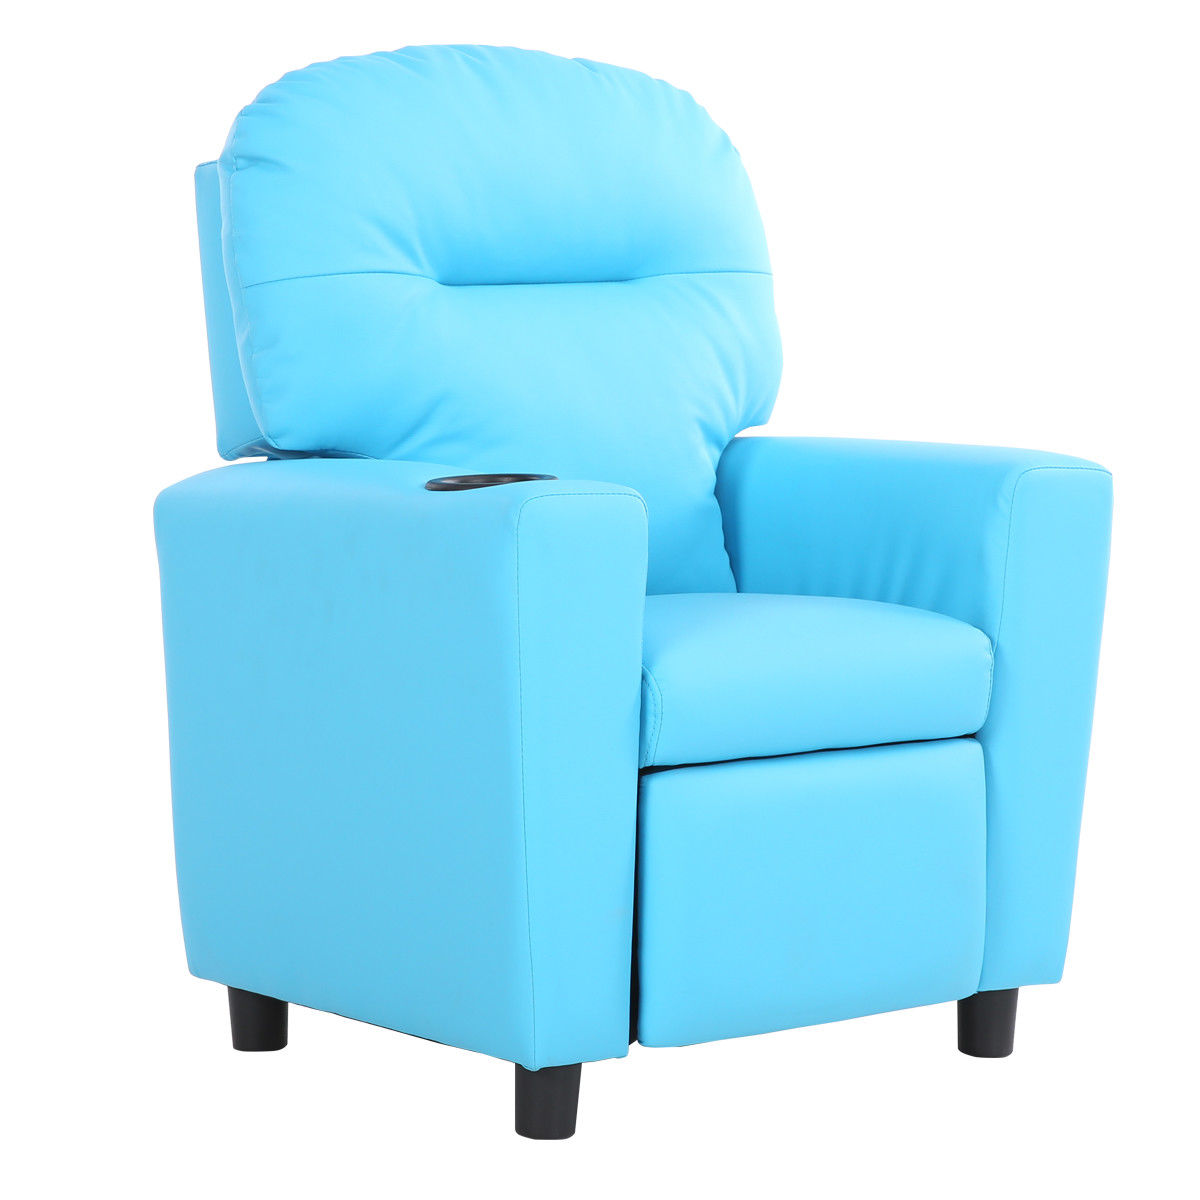 Recliner Armrest Couch Children Sofa  w/ Cup Holder-Blue